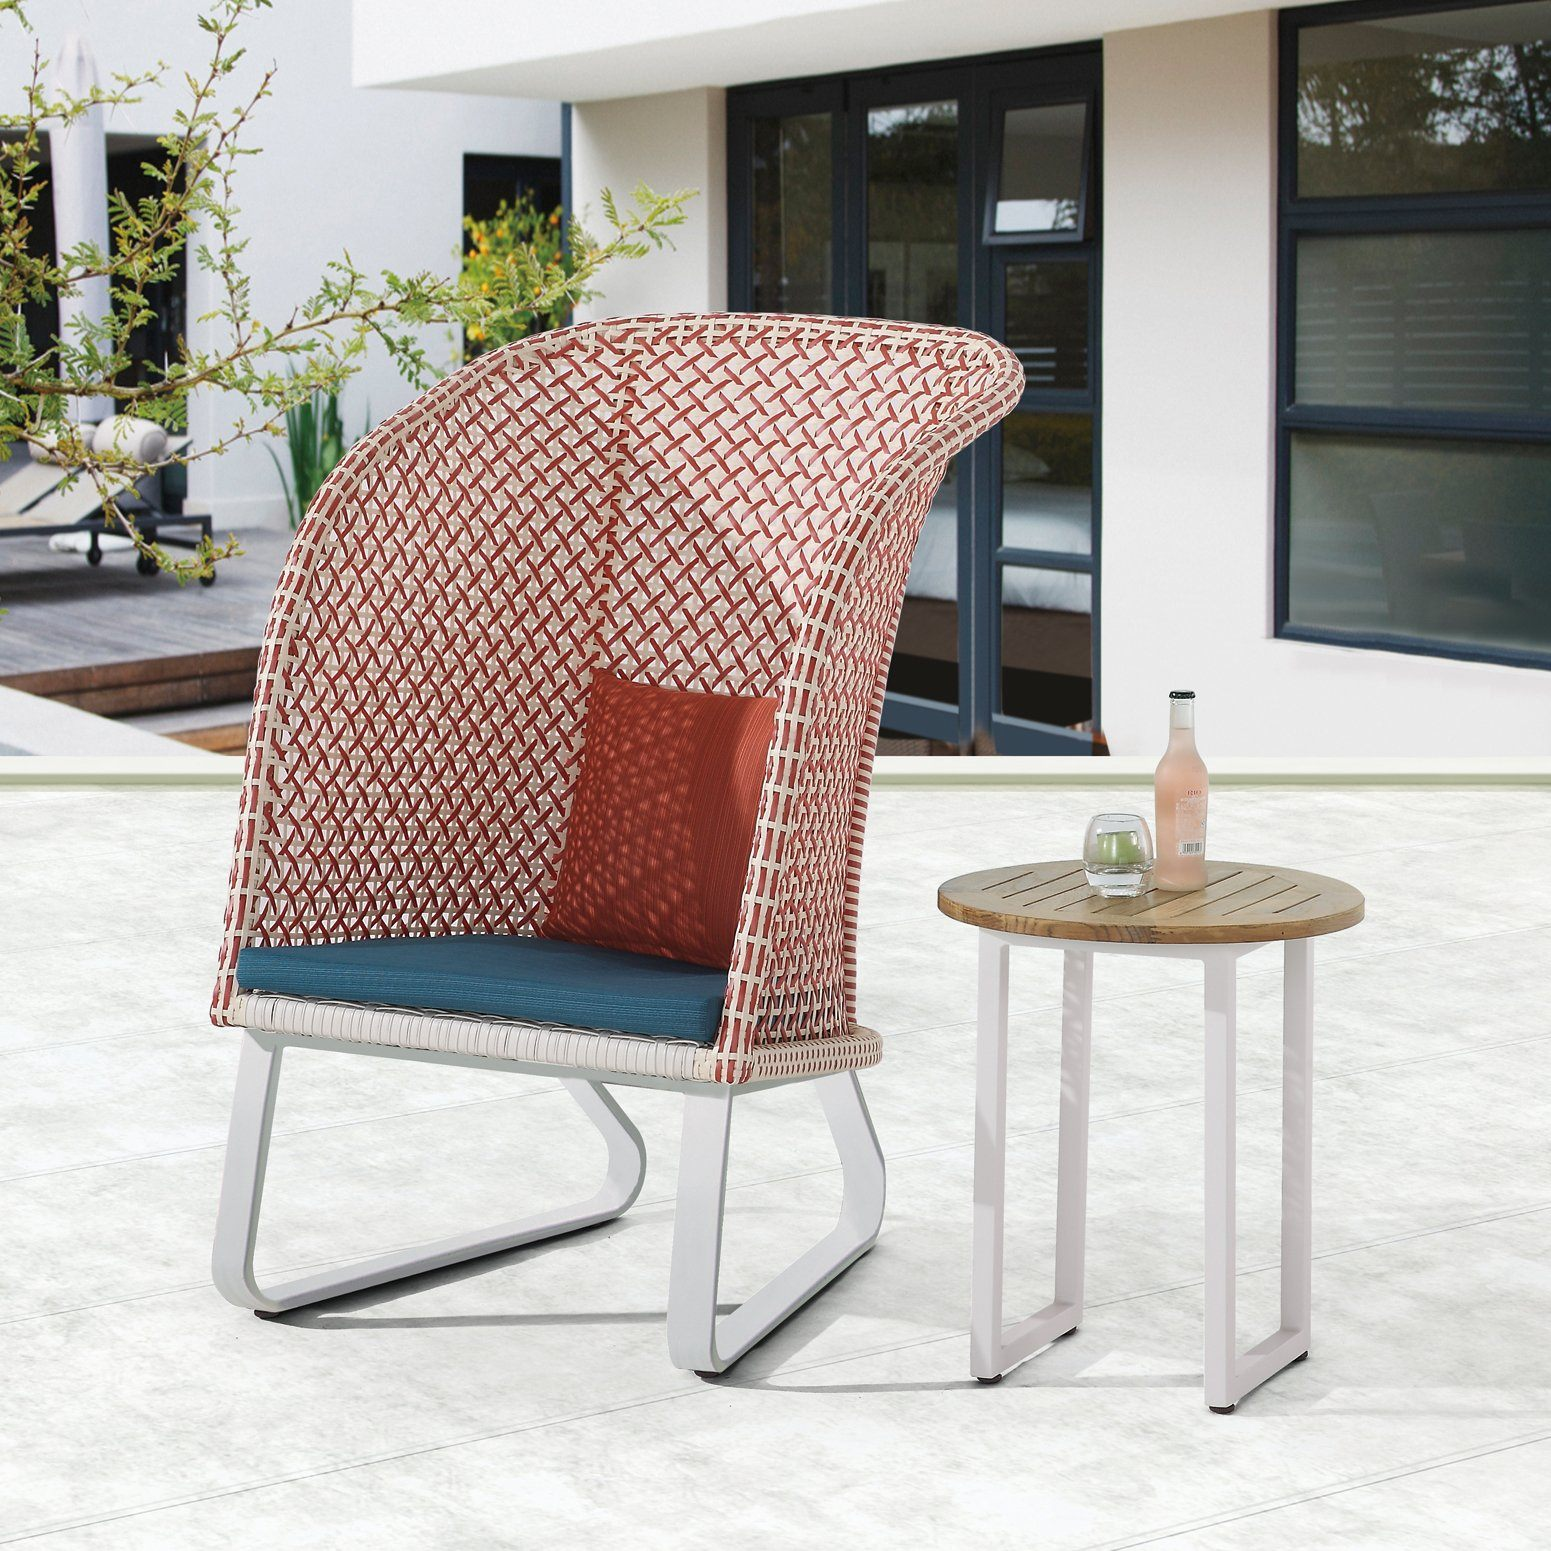 Evian High Back Outdoor Lounge Chair Tb Outdoor Design Outdoor Furniture